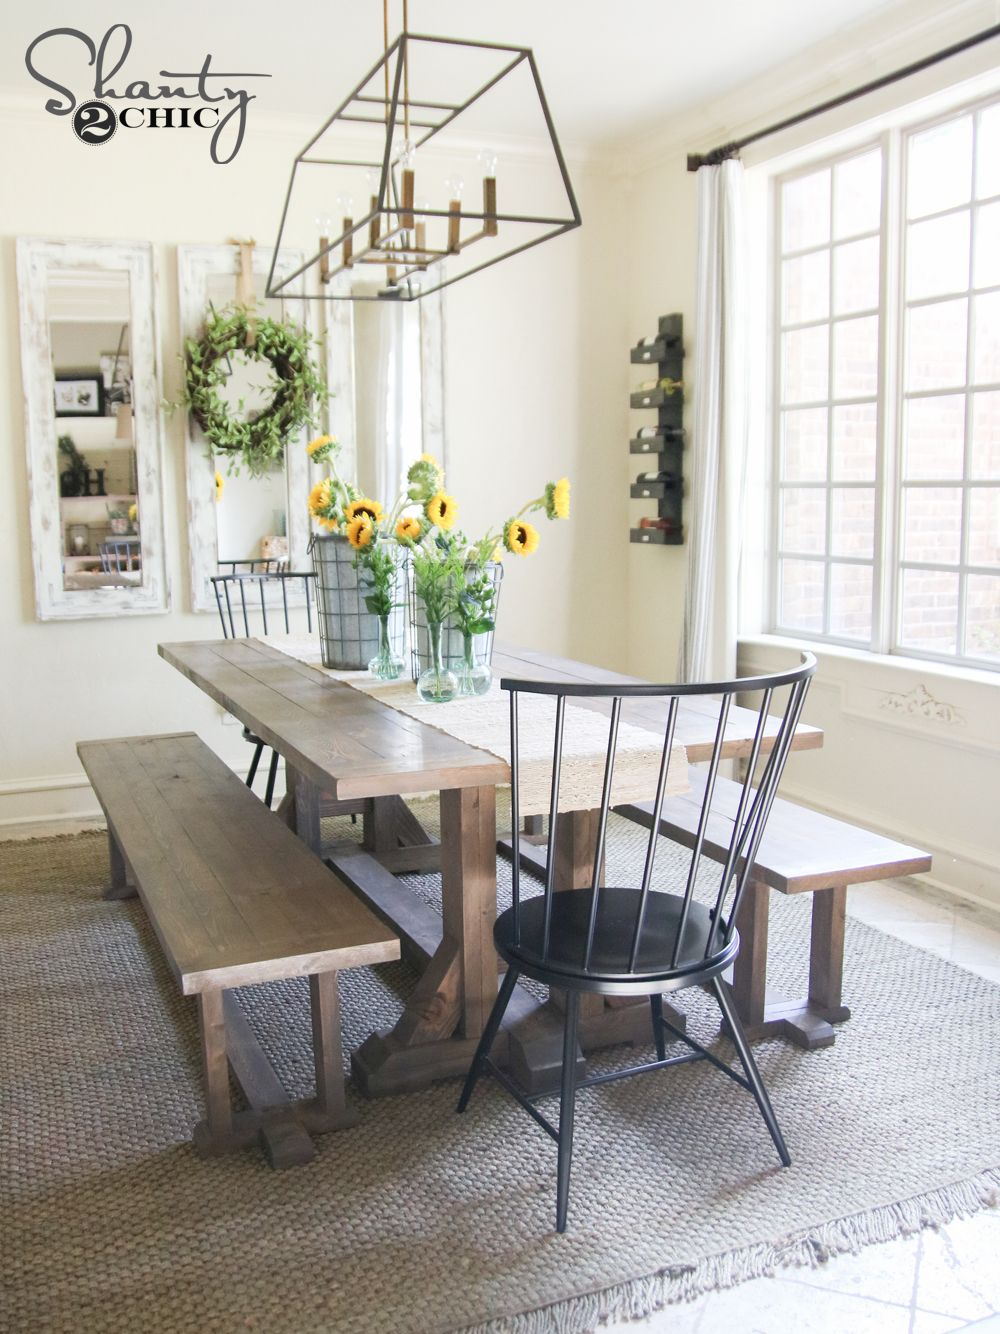 DIY Pottery Barn Inspired Dining Table for $100 | Furniture plans ...